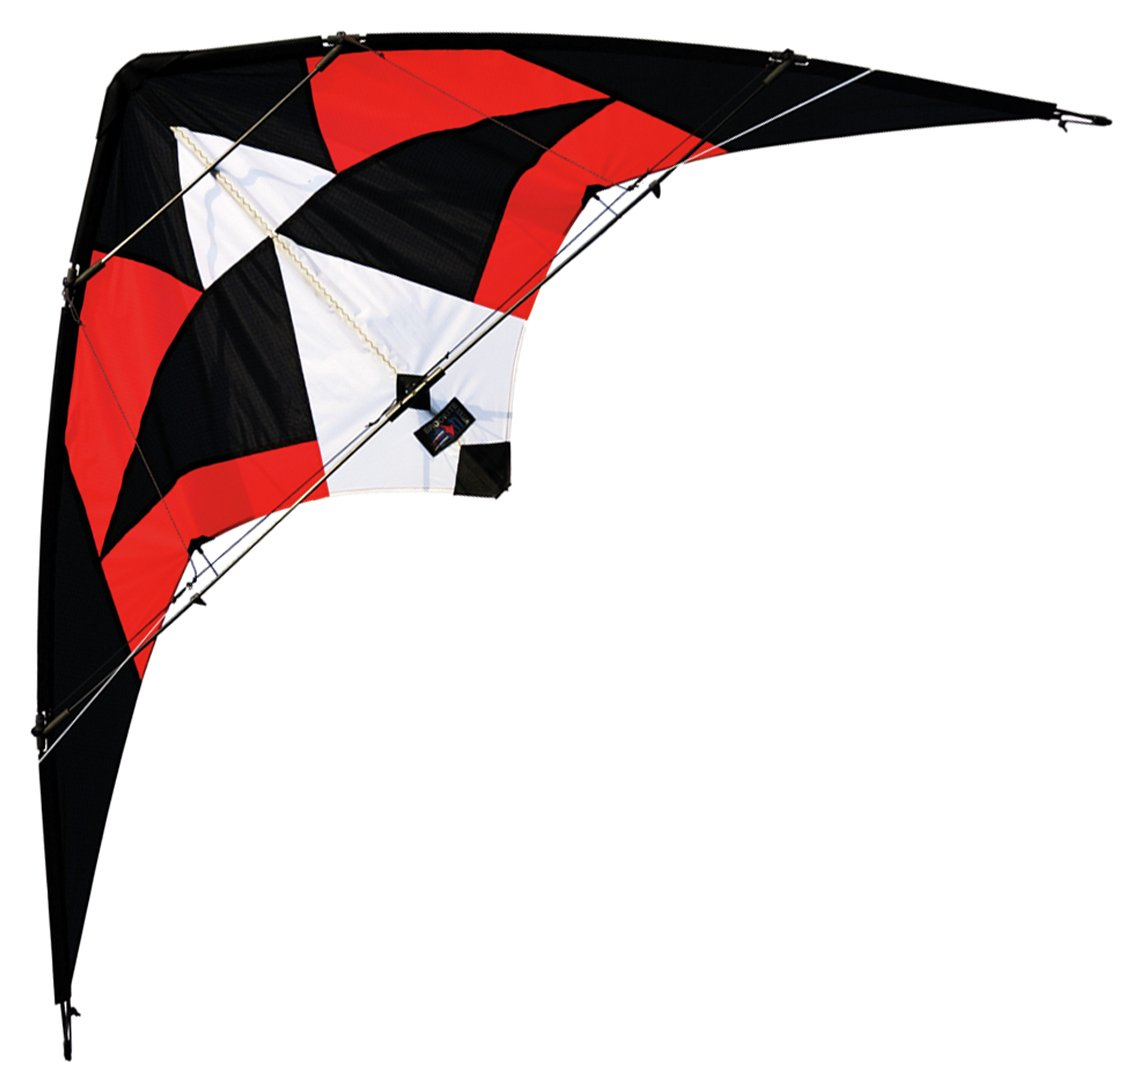 Image of Brookite - Harrier Kite - 150 x 74cm